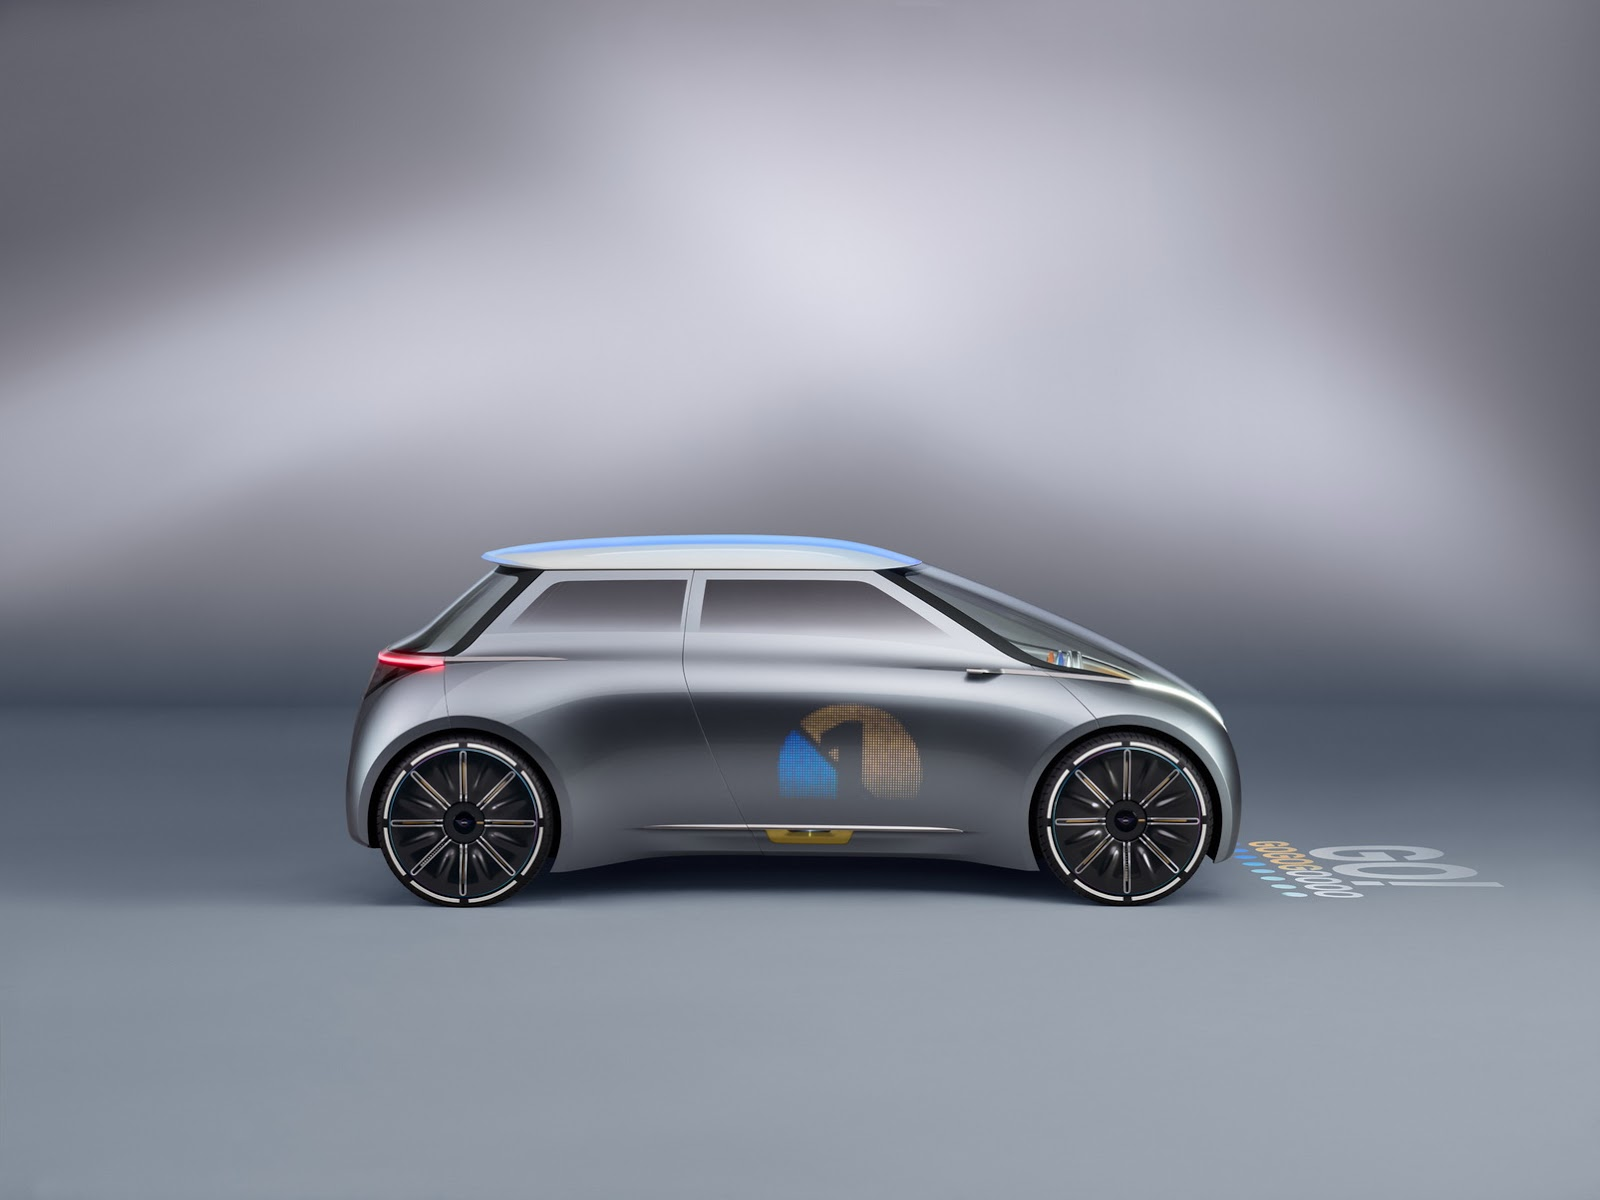 Genesis Car Wallpaper 2019 Mini Ev Confirmed As 3 Door Hatch All Electric Bmw